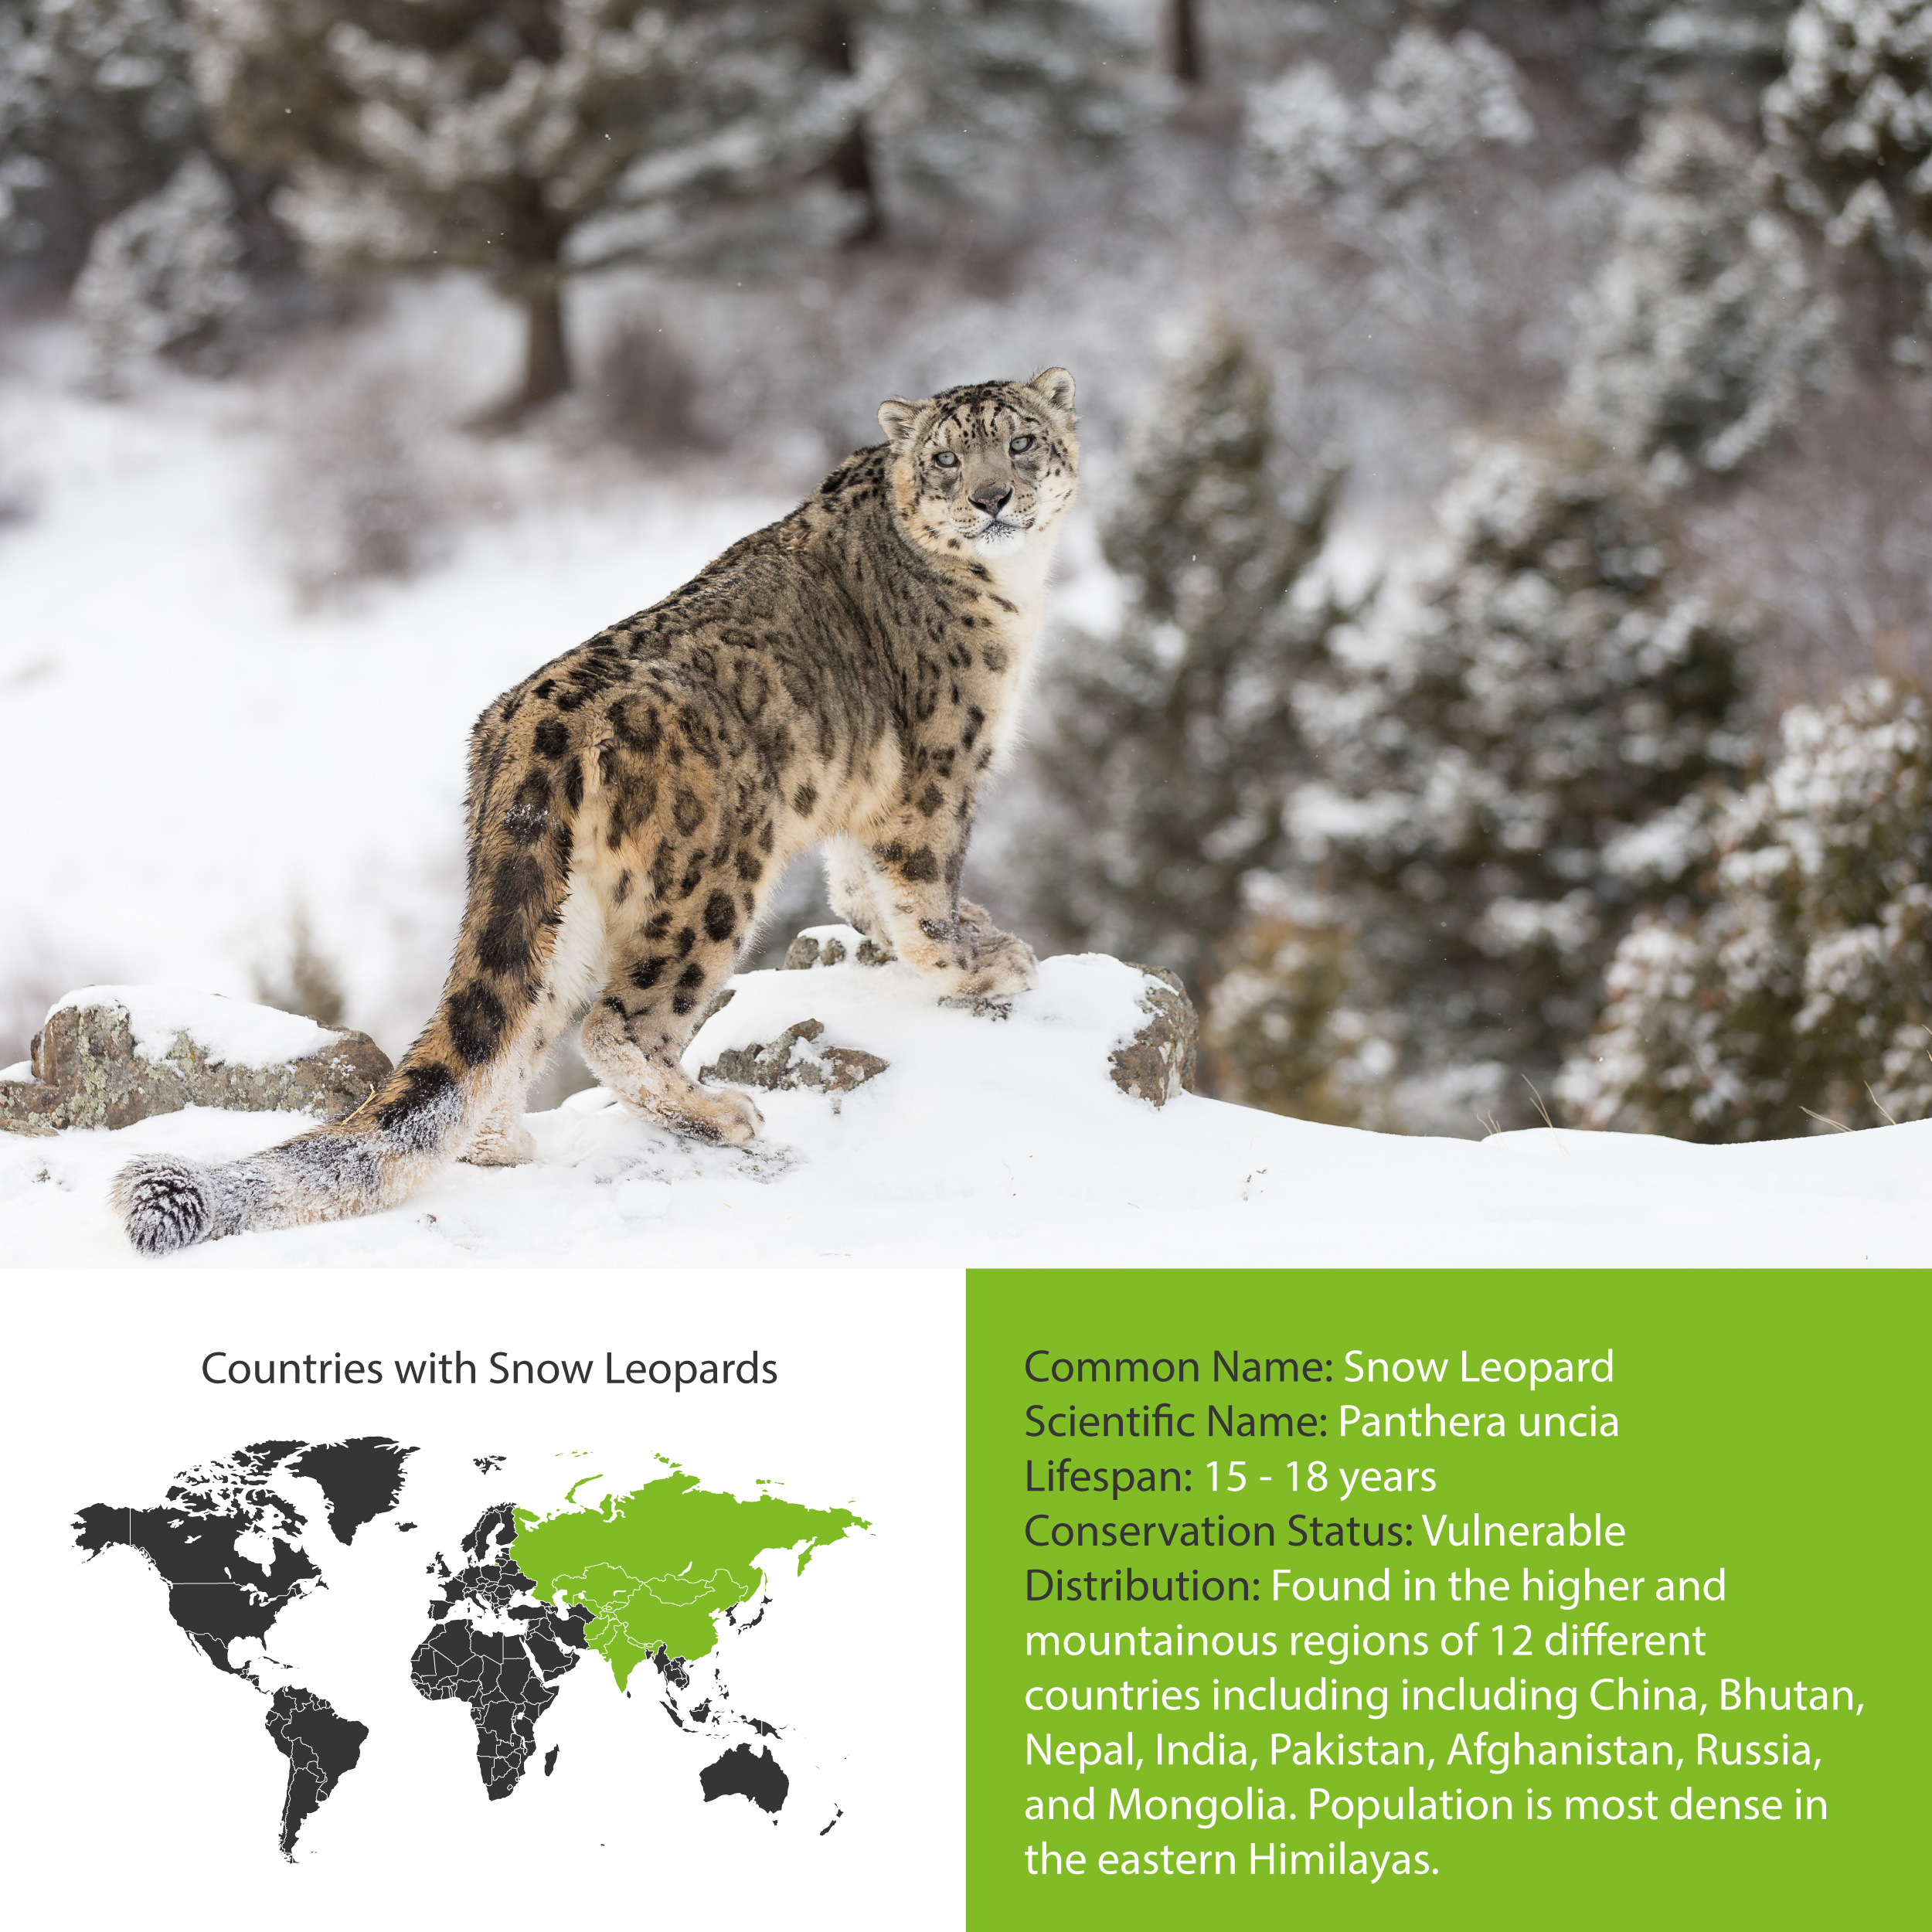 Snow Leopard Distribution